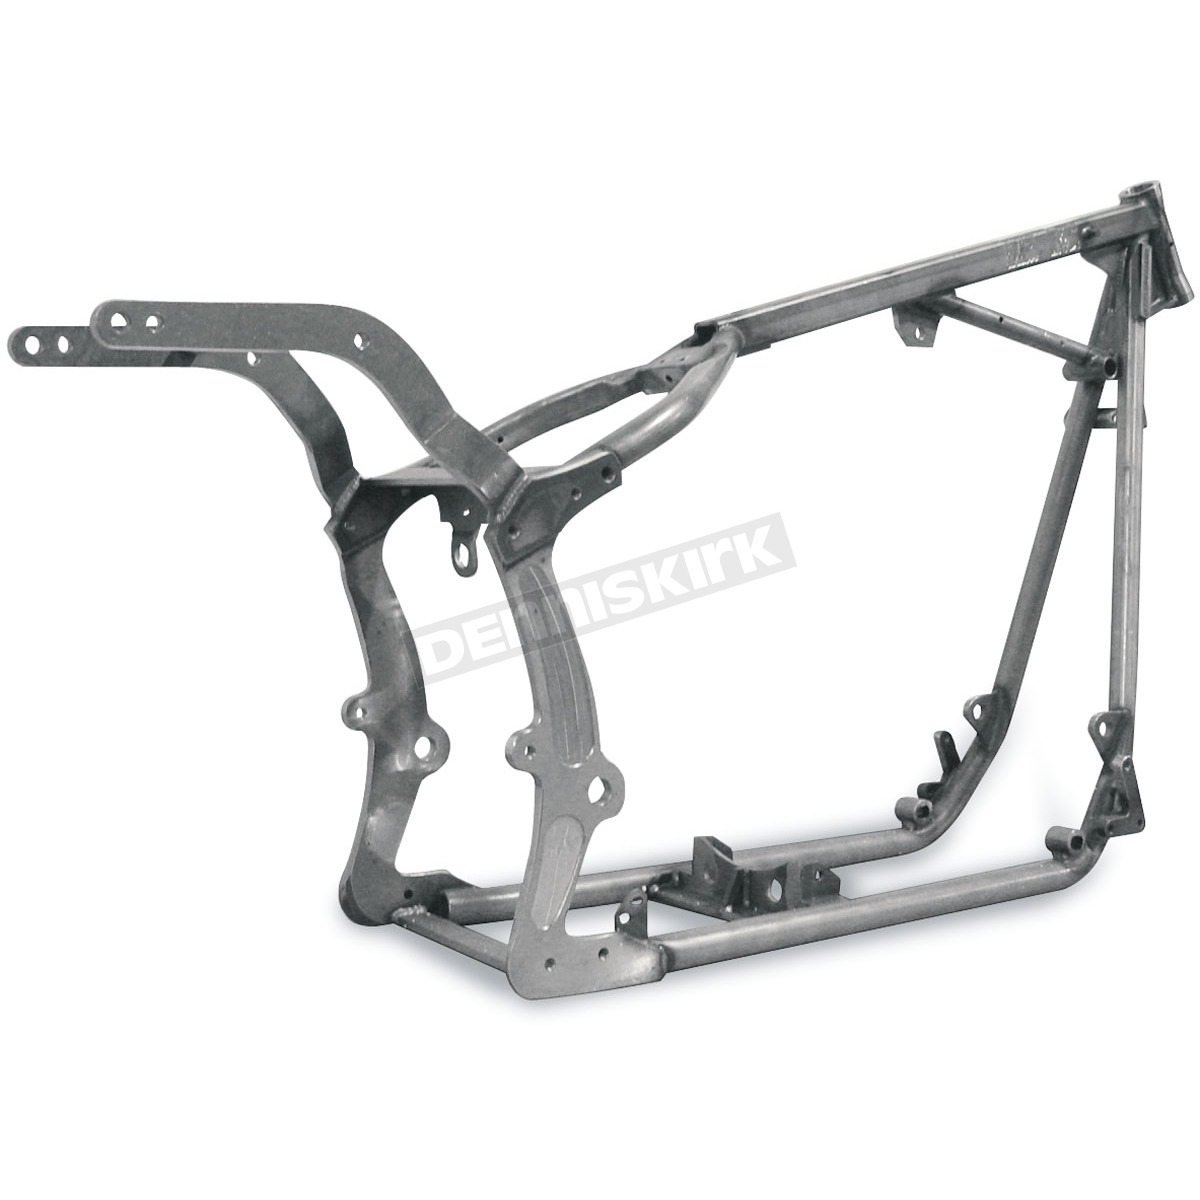 kraft tech softail style frame for twin cam 88b engine 20013 loading zoom